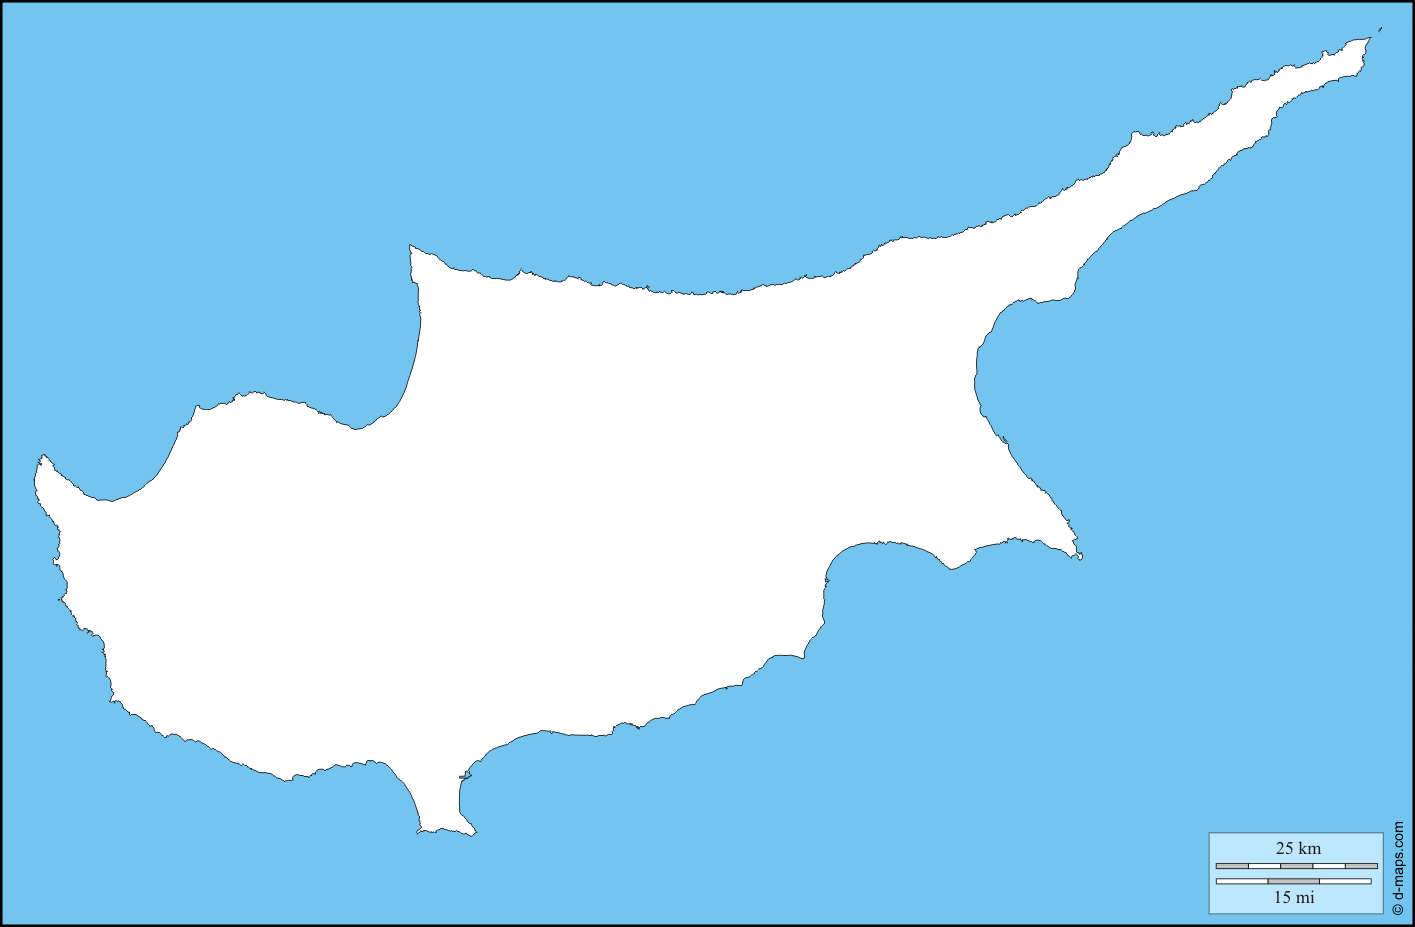 Image CyprusMappng Alternative History FANDOM Powered By Wikia - Cyprus map png